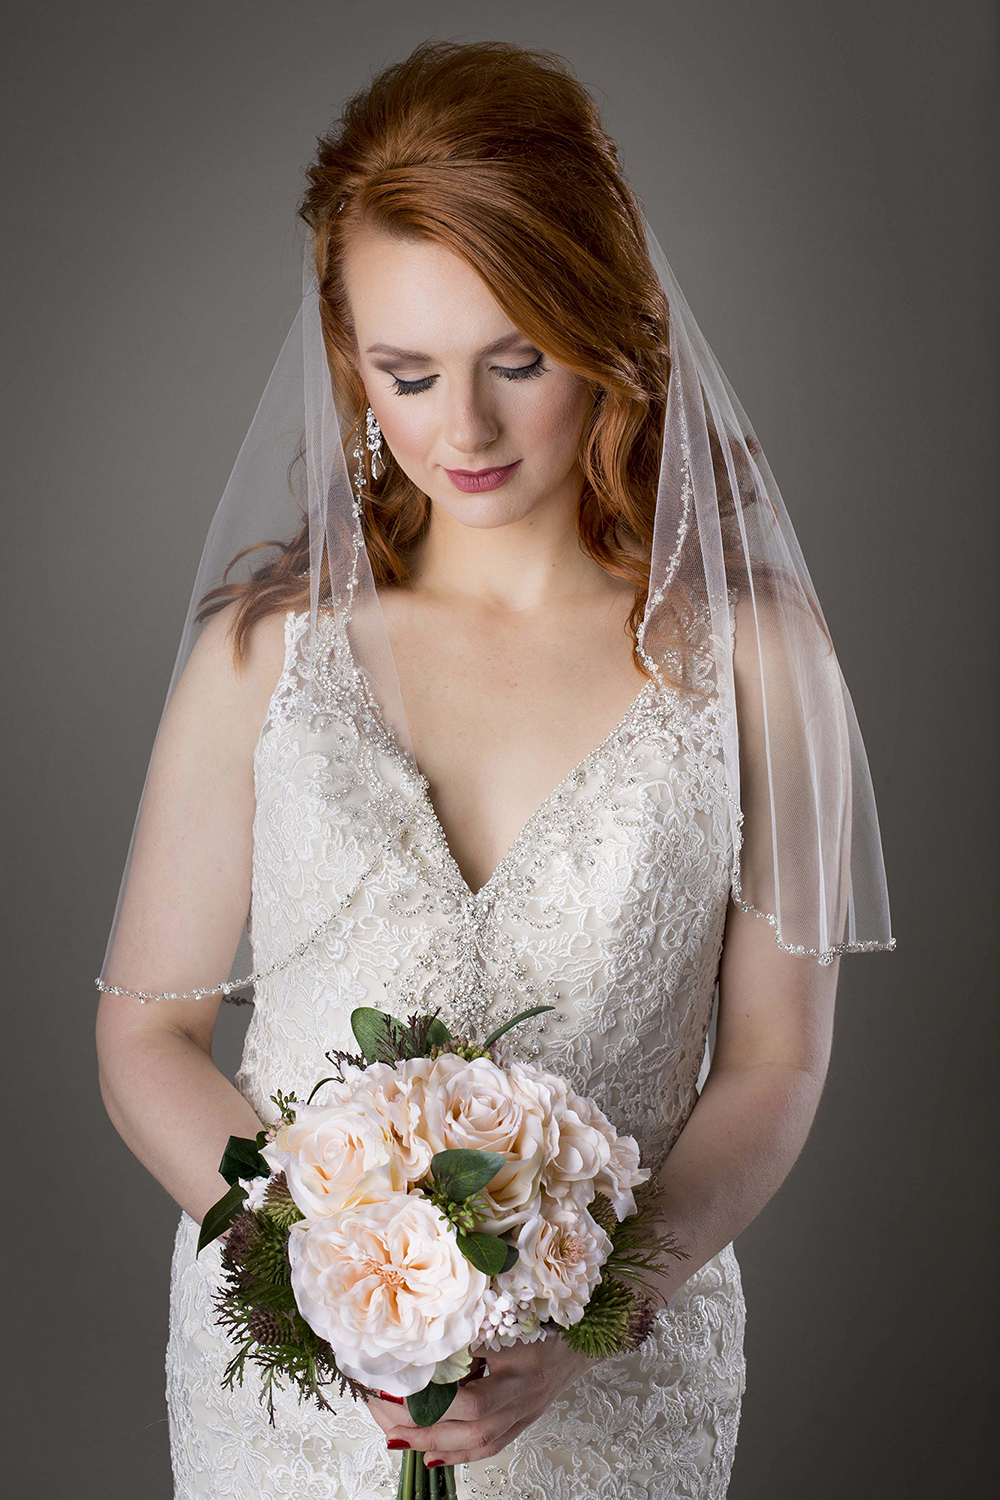 A bridal portrait guaranteed to turn heads at the reception, only at Bella Priscilla Photography.